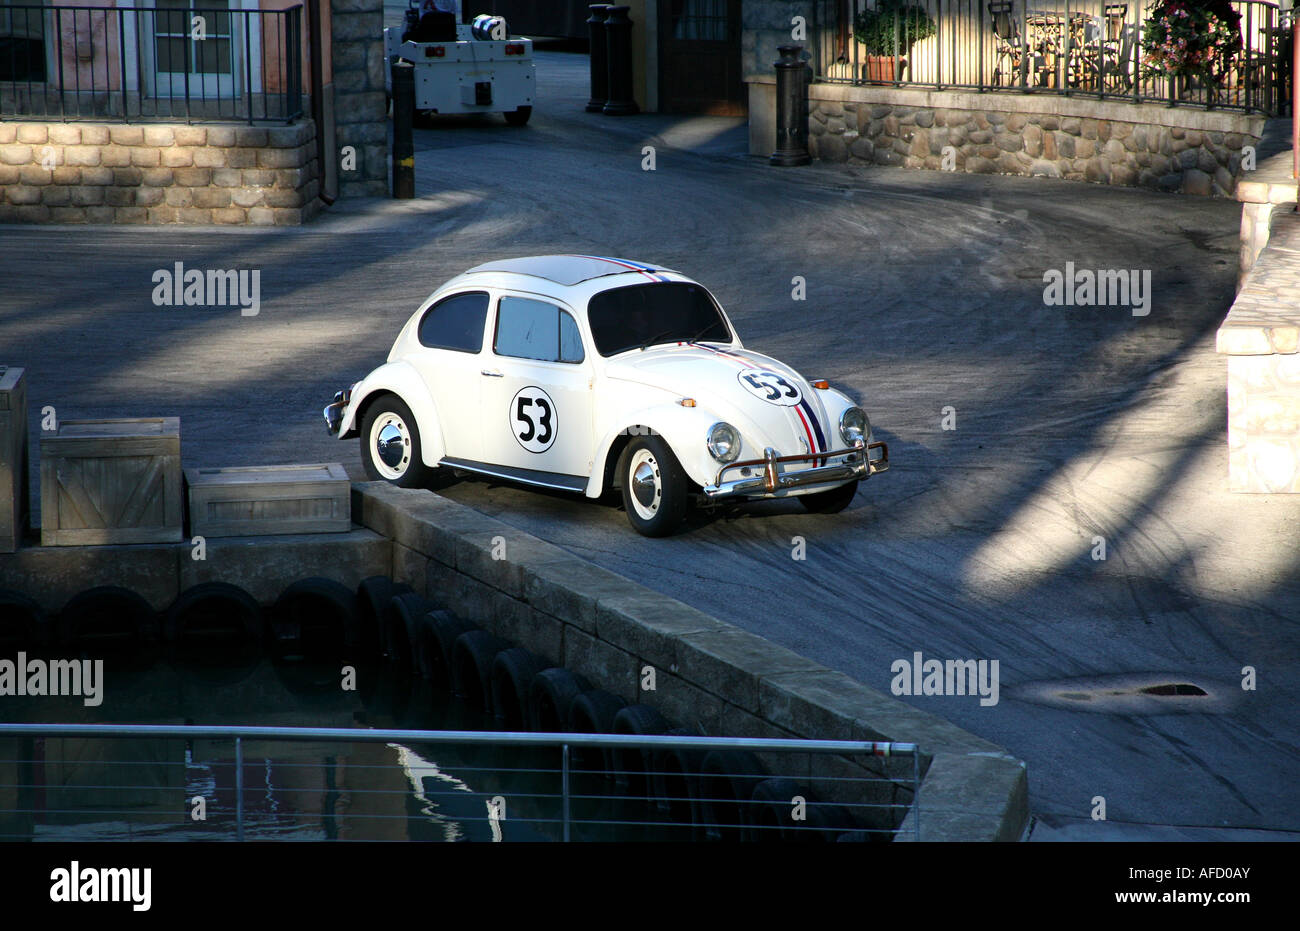 MGM Metro Goldwyn Mayer Studios at Disney World Orlando special stunts and effects show with Herbie - Stock Image